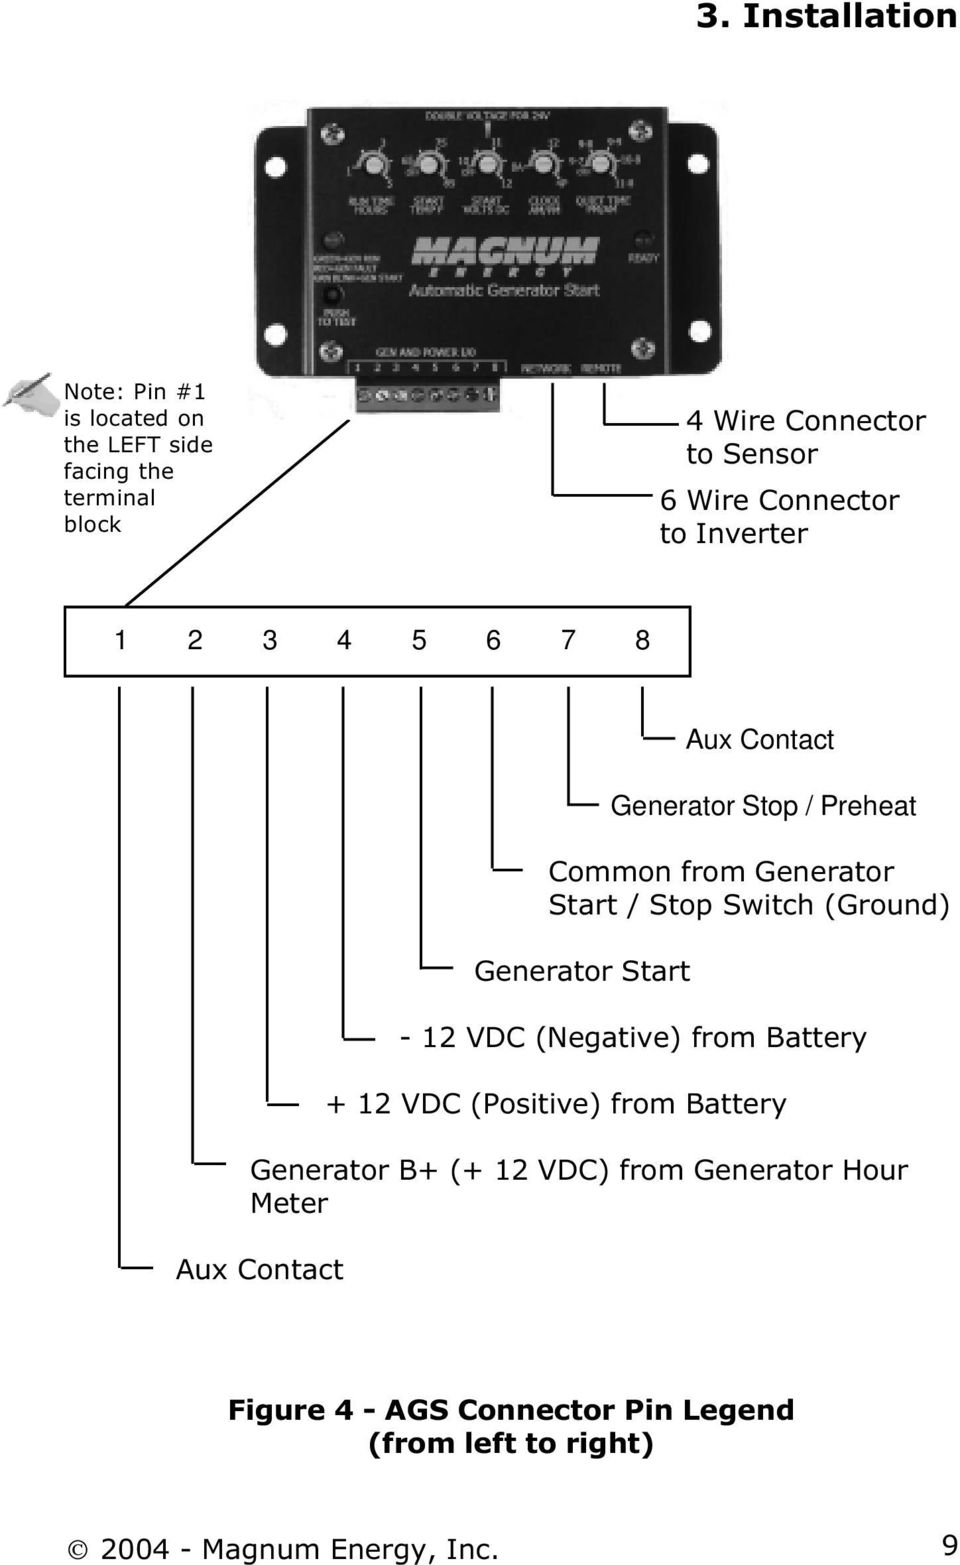 Me Ags Auto Gen Start Network System With Inverter And Remote For Negative Ground Generator Wiring Diagram 12 Vdc From Battery 3 Installation